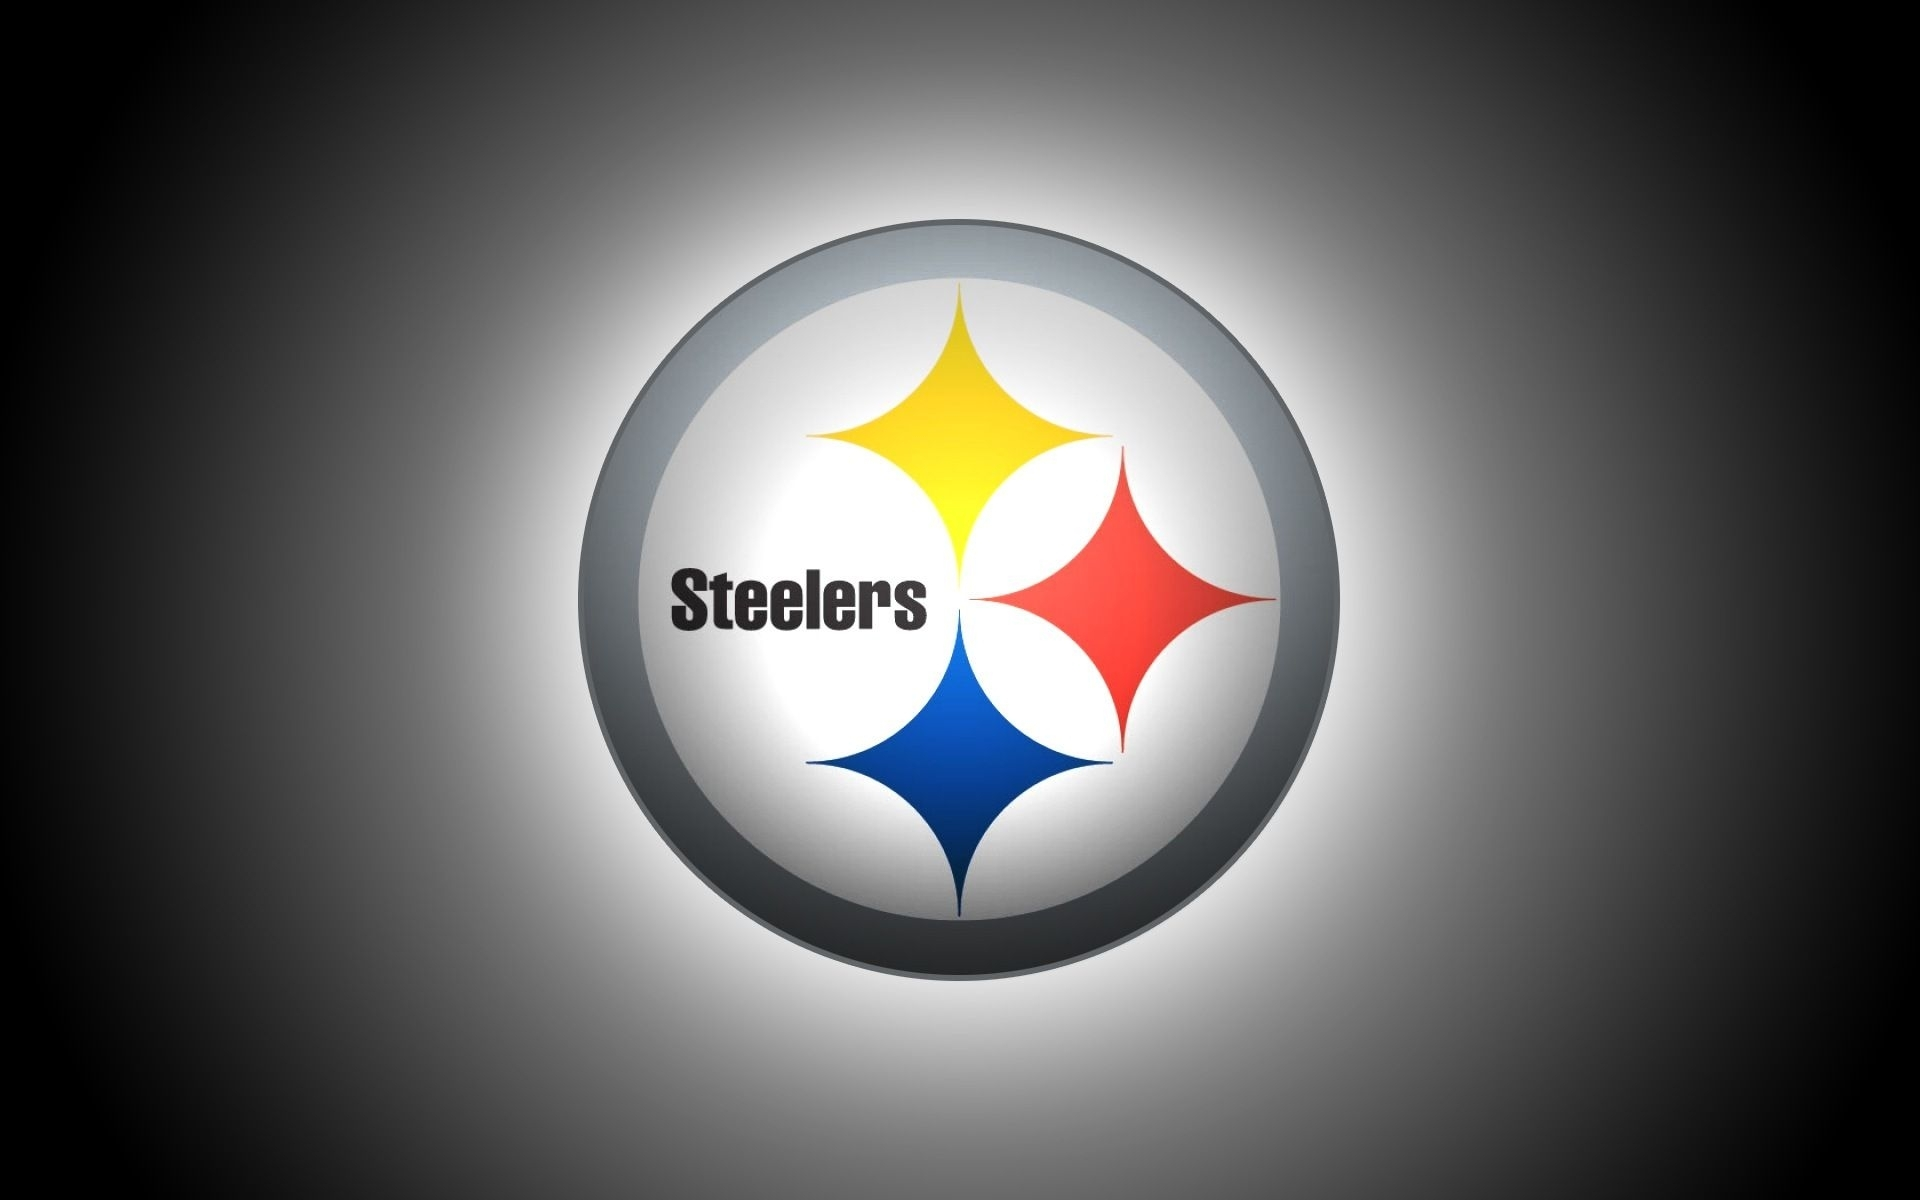 10 Latest Pittsburgh Steeler Wallpaper Free FULL HD 1080p For PC Background